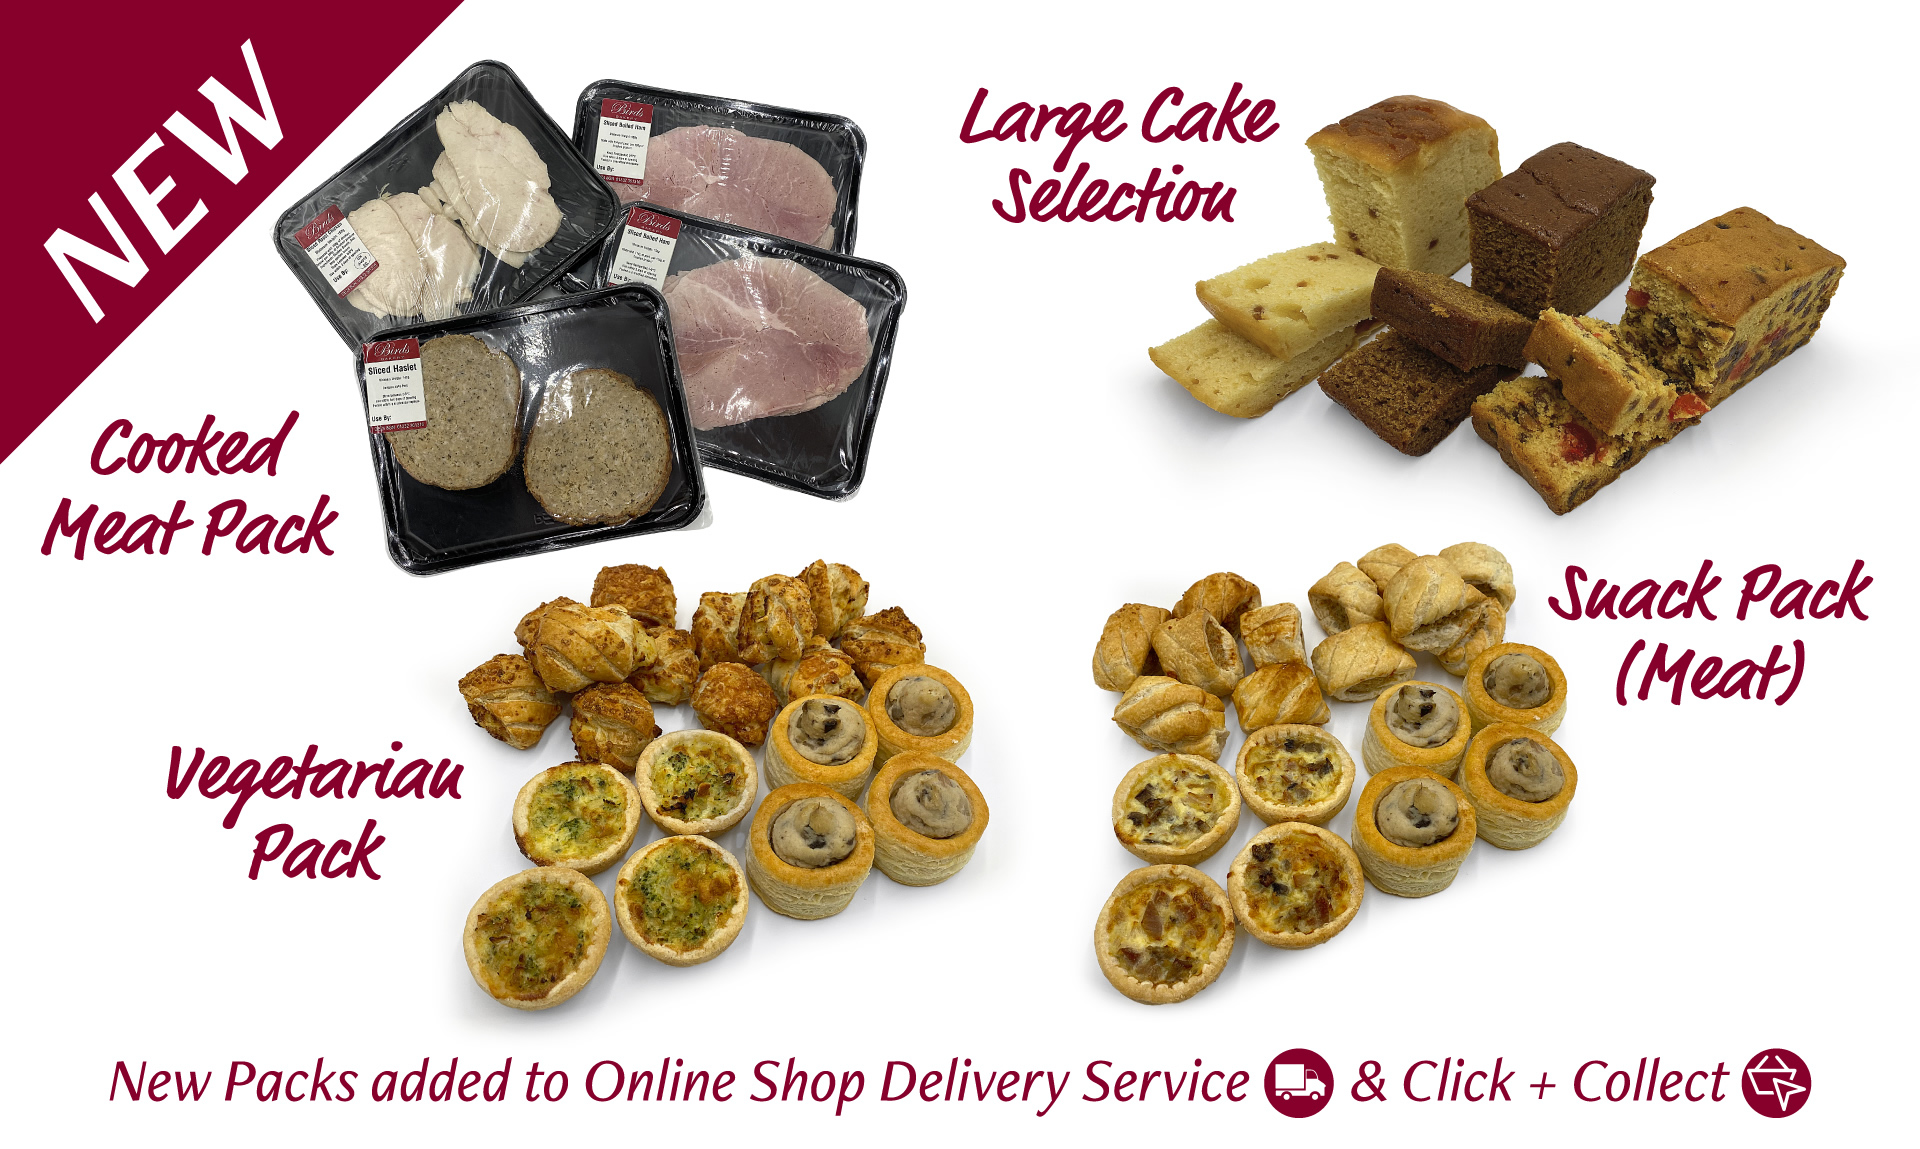 New packs added to our home delivery and click and collect services. Large cake selection, Cooked meat pack, Vegetarian pack, Snack Pack (Meat)